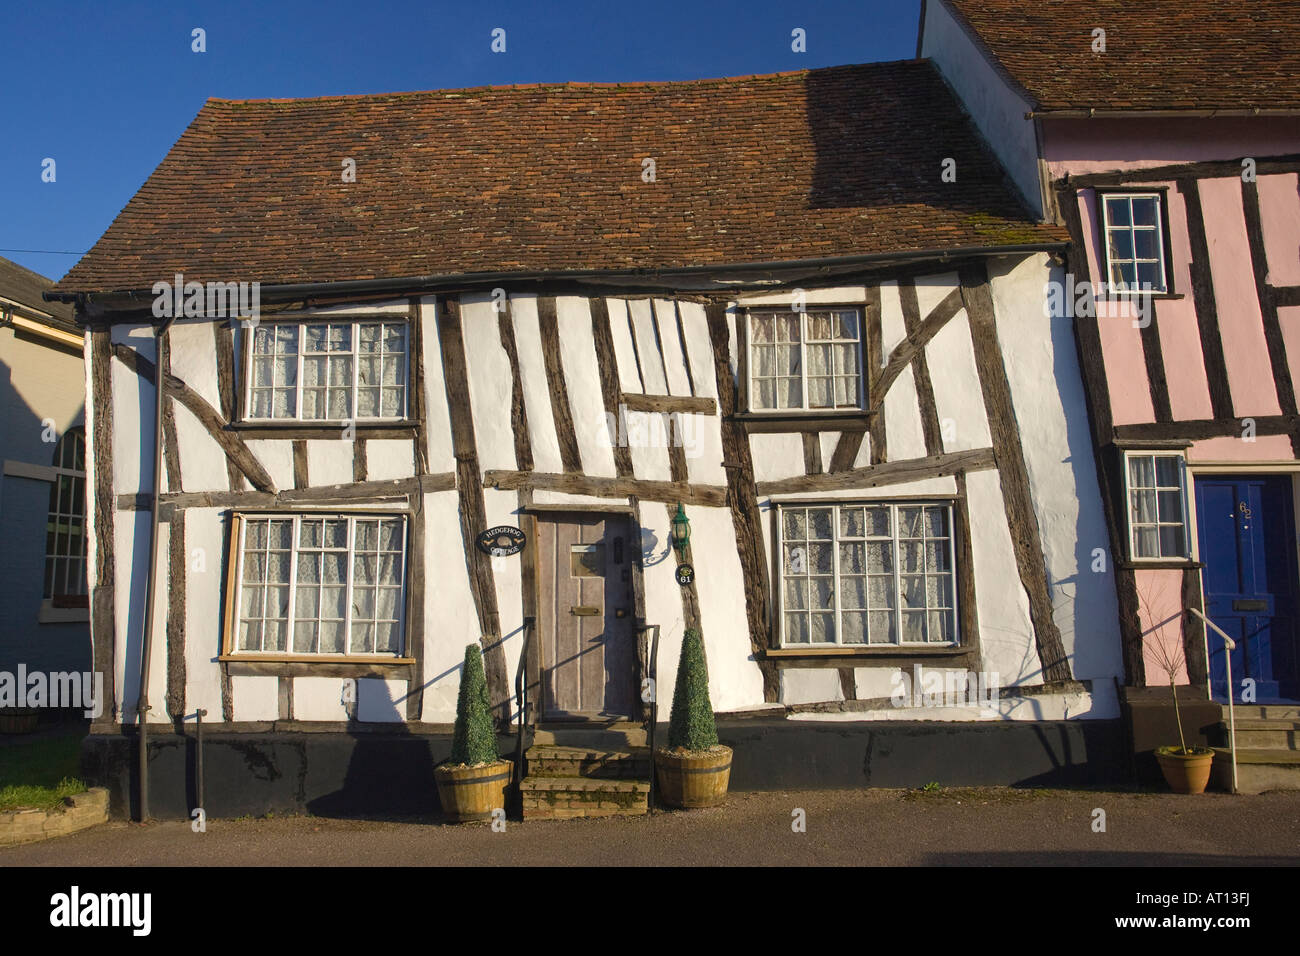 Traditional Timber Frame House In High Street In Lavenham